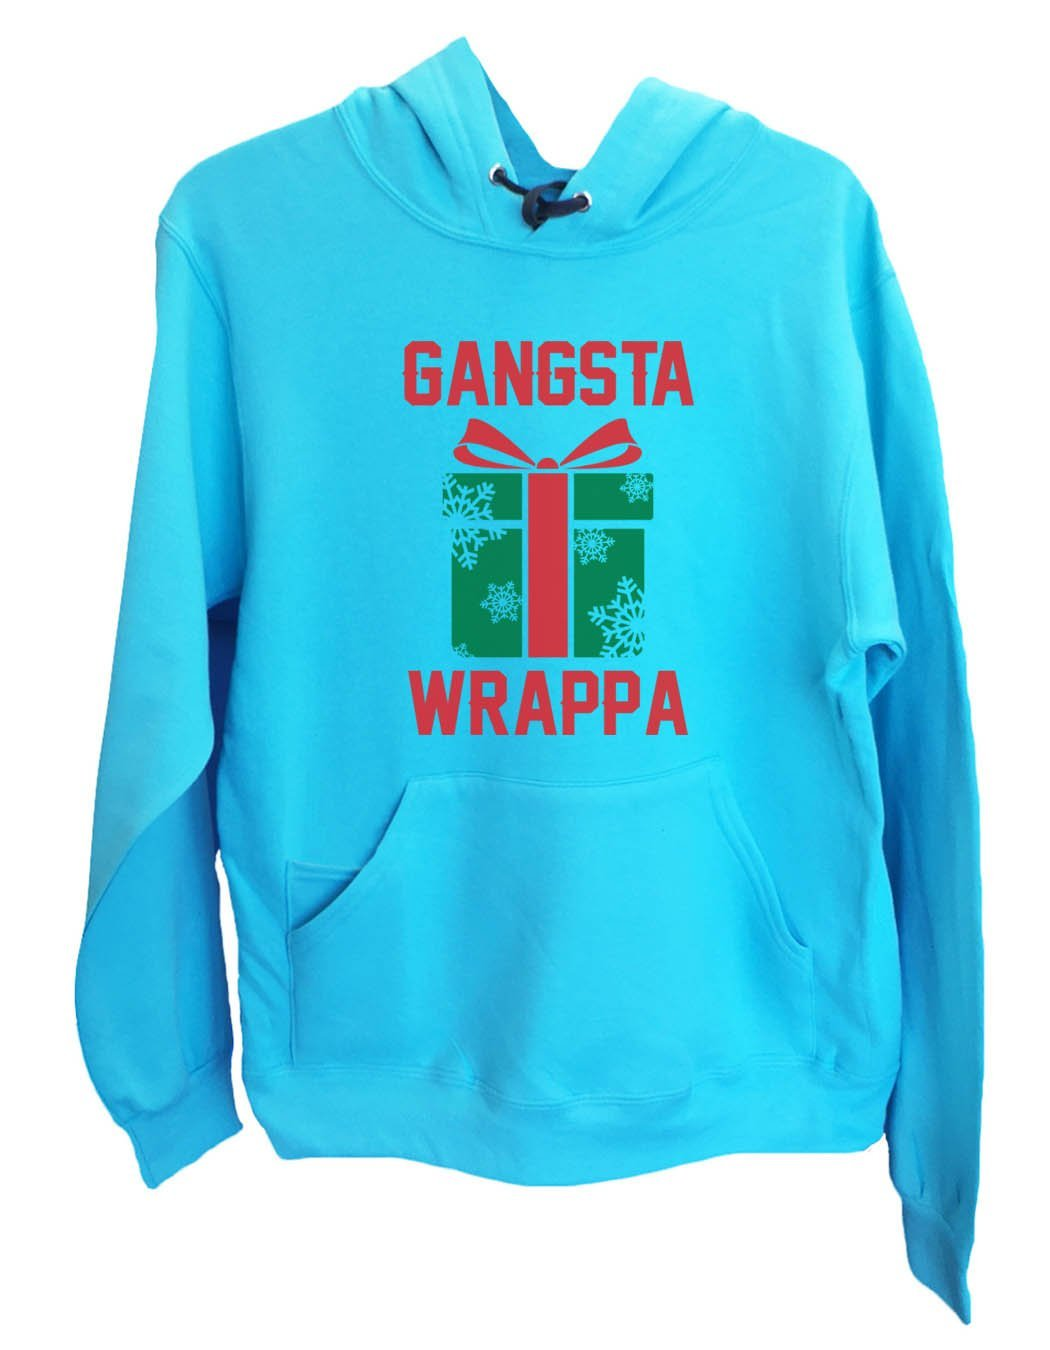 UNISEX HOODIE - Gangasta Wrappa - FUNNY MENS AND WOMENS HOODED SWEATSHIRTS - 2381 Funny Shirt